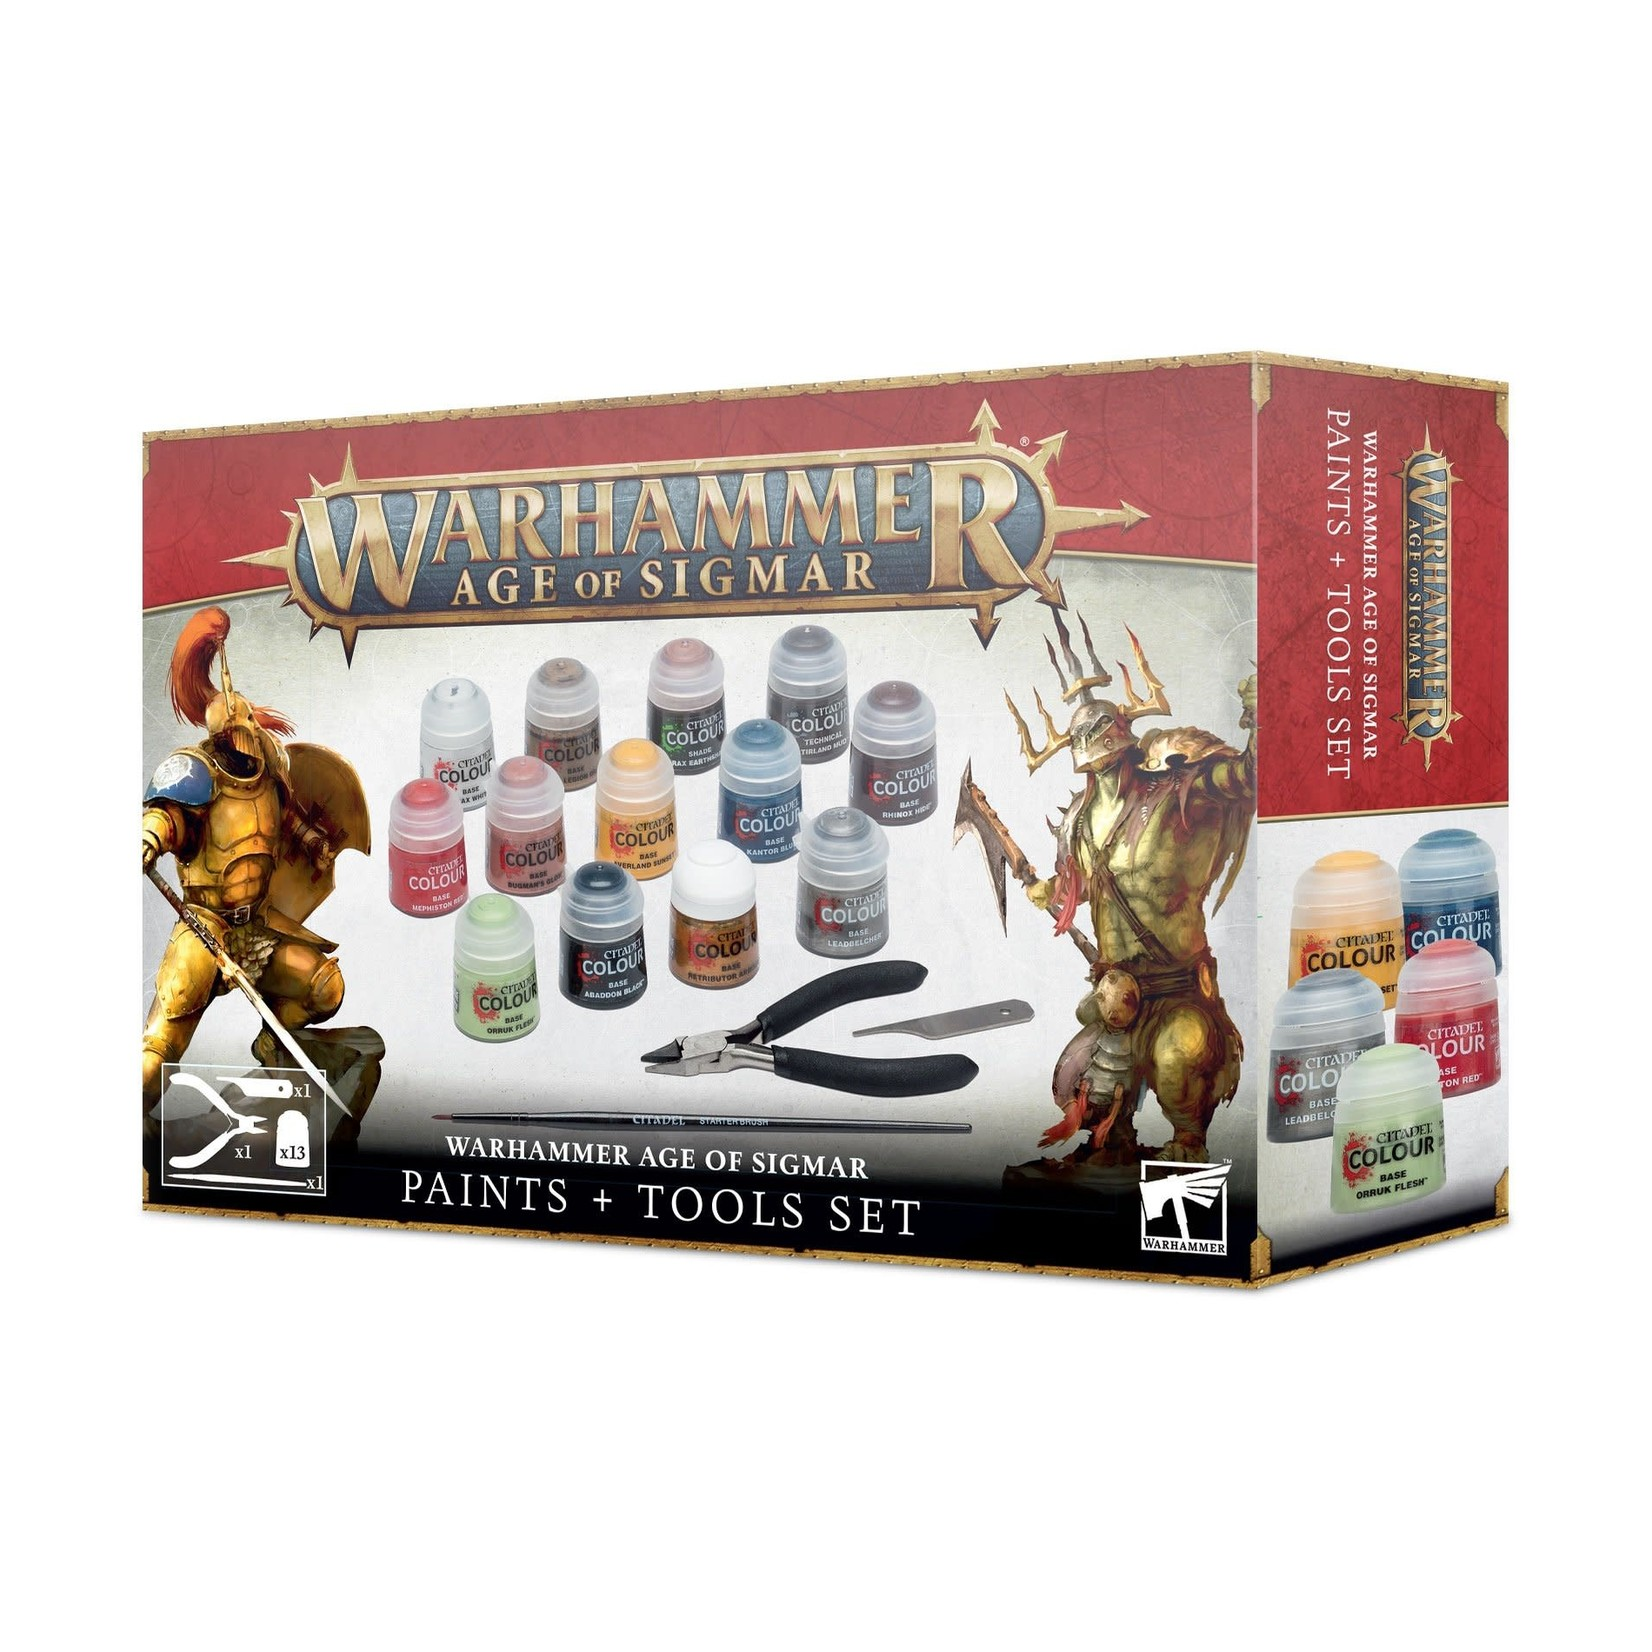 Age of Sigmar Age of Sigmar Paints + Tools Set